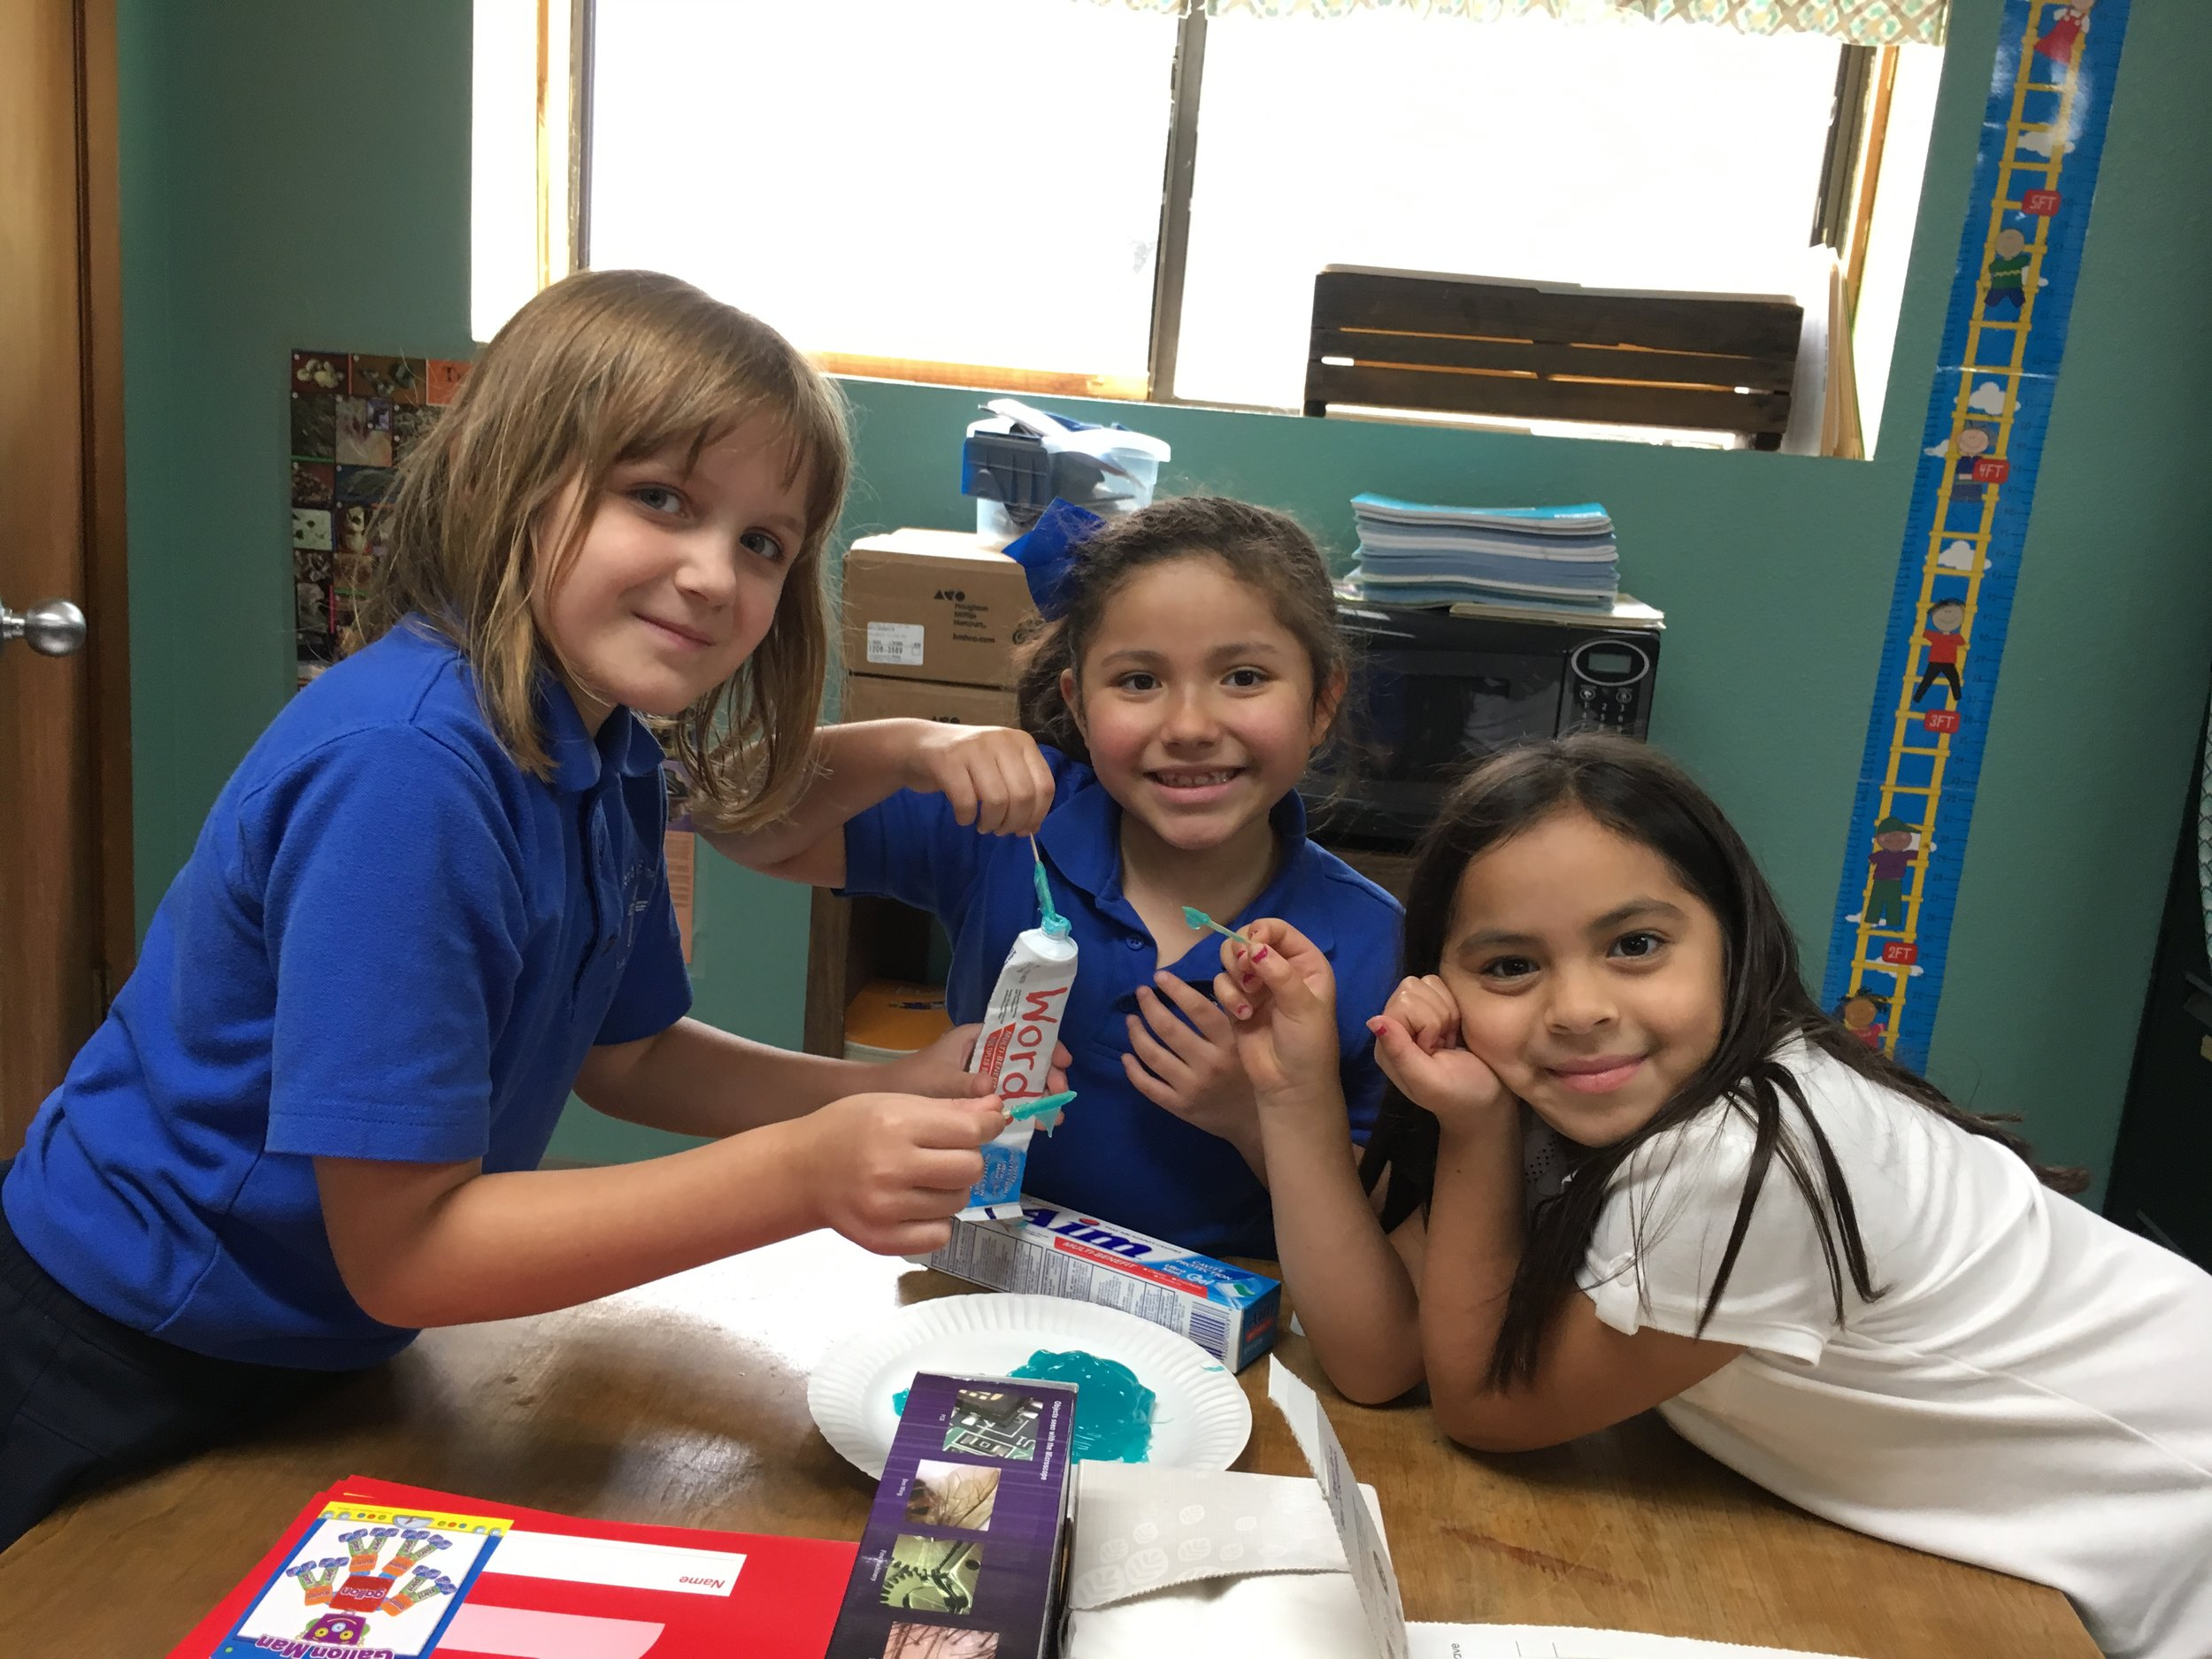 Elementary (Prek-5) - A variety of curriculum that exceeds TEA standards is utilized by our students, including but not limited to: One Life in Christ, McGraw Hill, Zaner Bloser, Saxon Math, Harcourt and Science Fusion and others. For grade specific information, please reference the class curriculum overview and sample schedule.